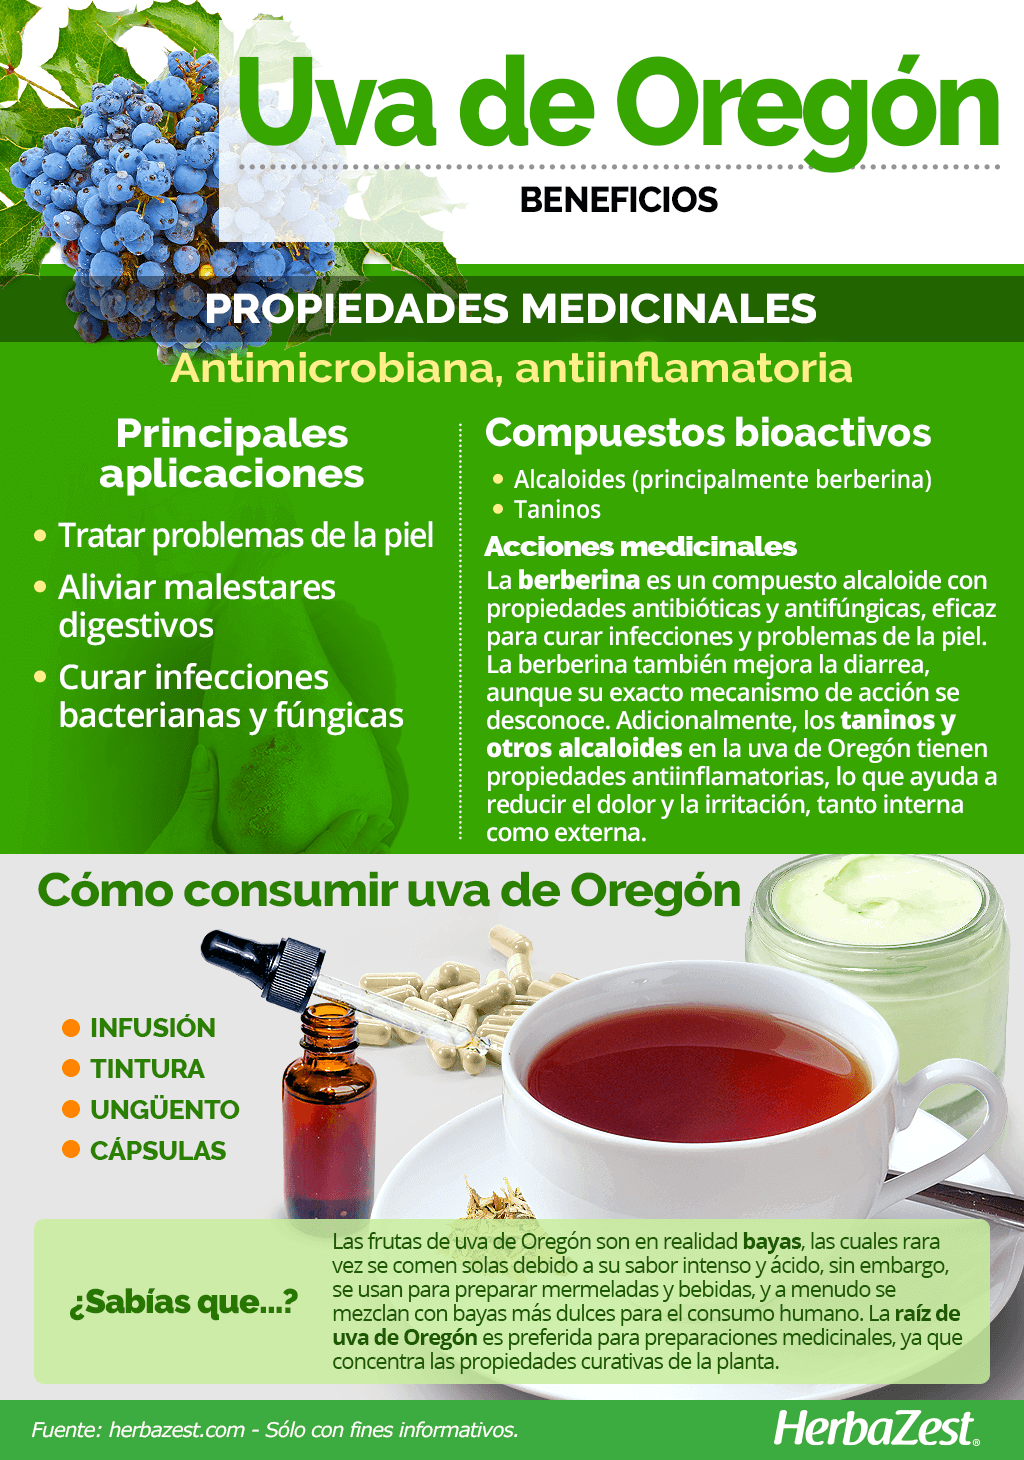 Beneficios de la uva de Oregón